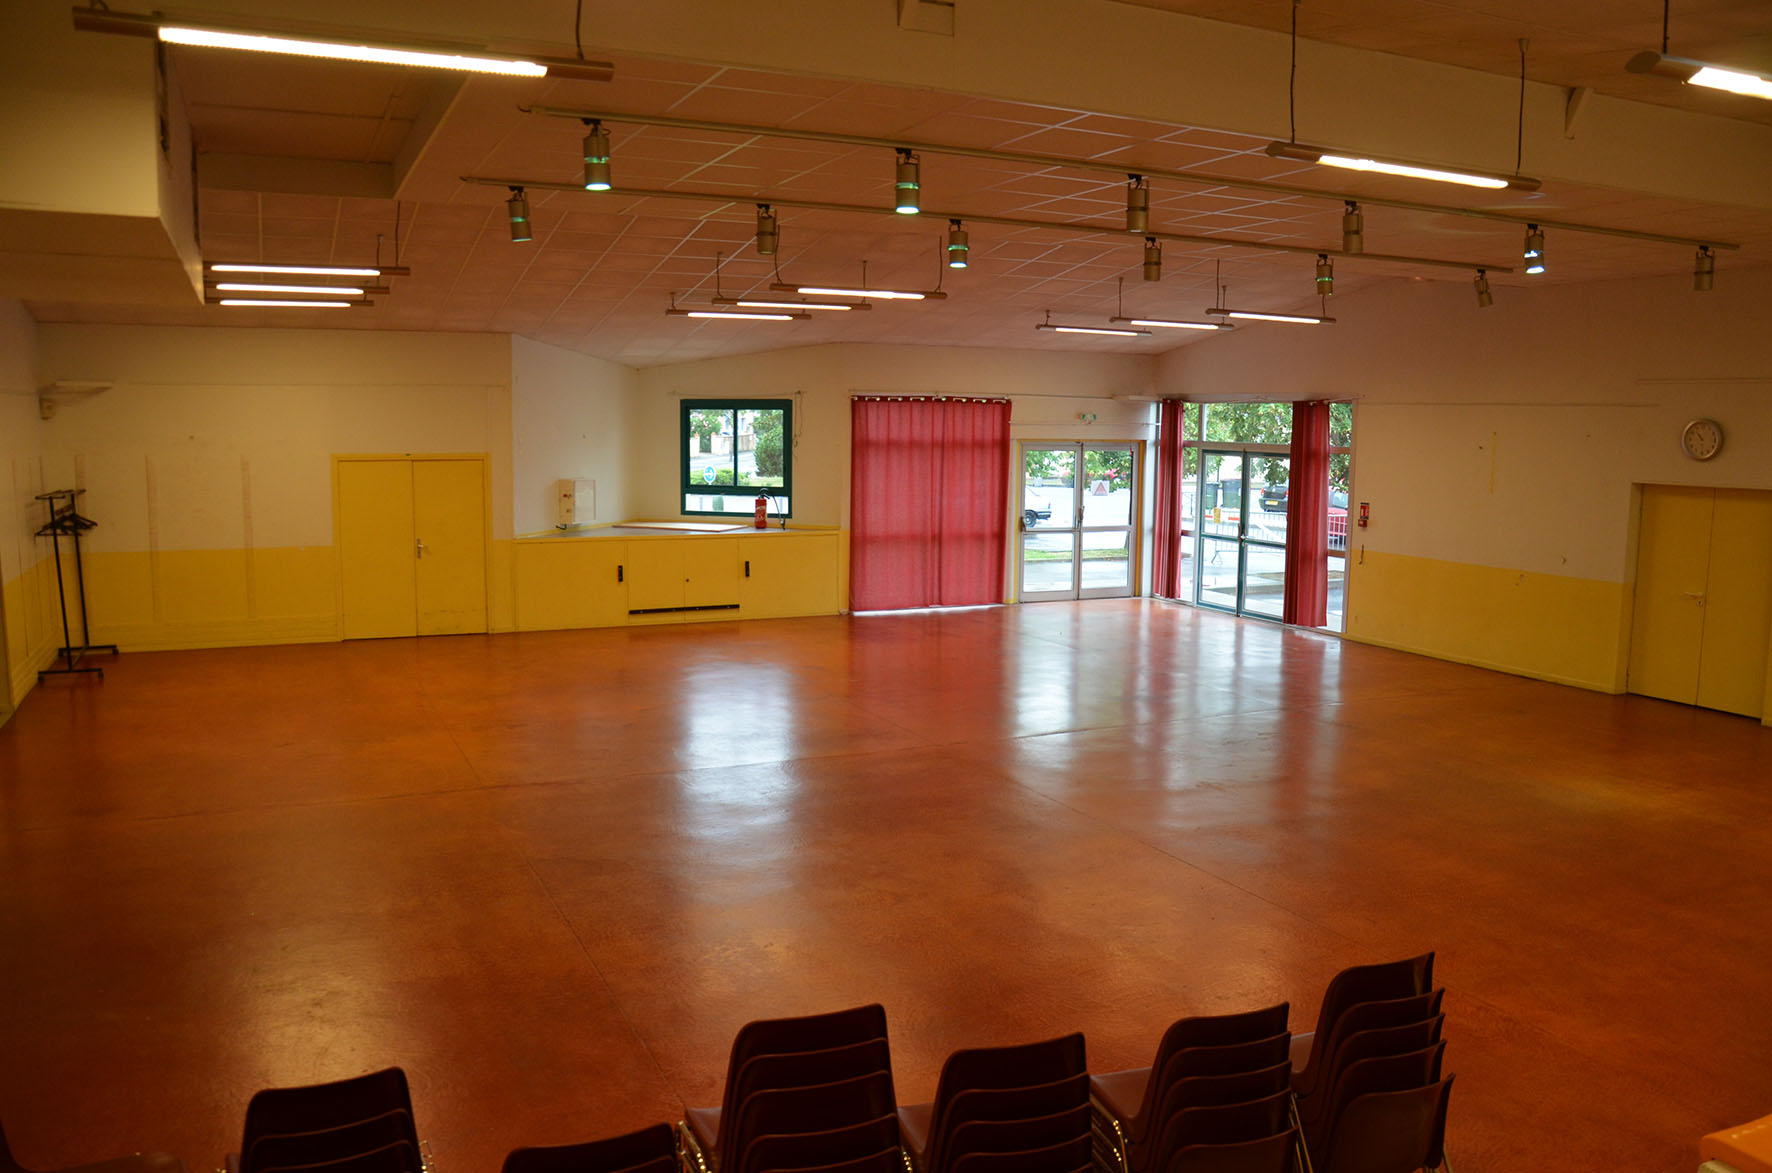 Salle poly-1